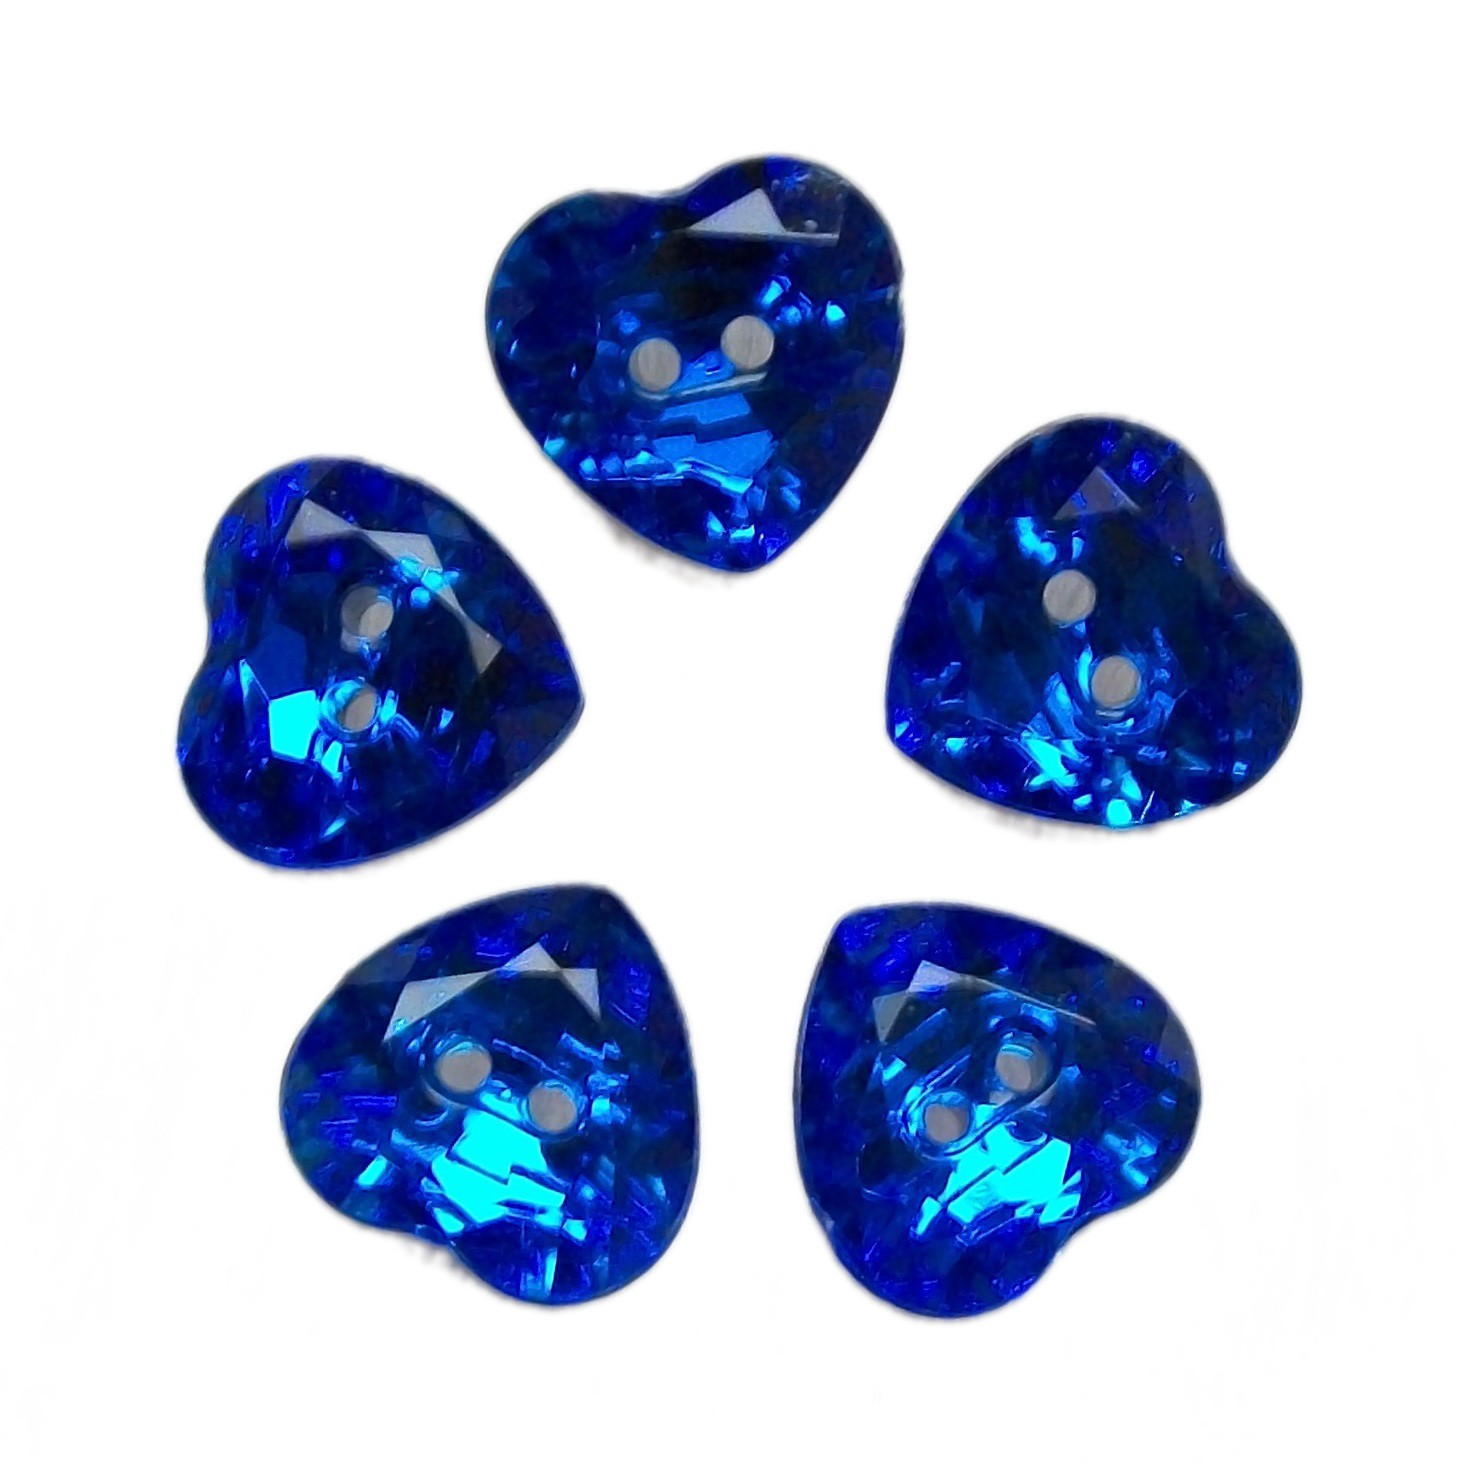 Acrylic Crystal Effect Heart Shape Buttons 12mm Blue Pack of 5